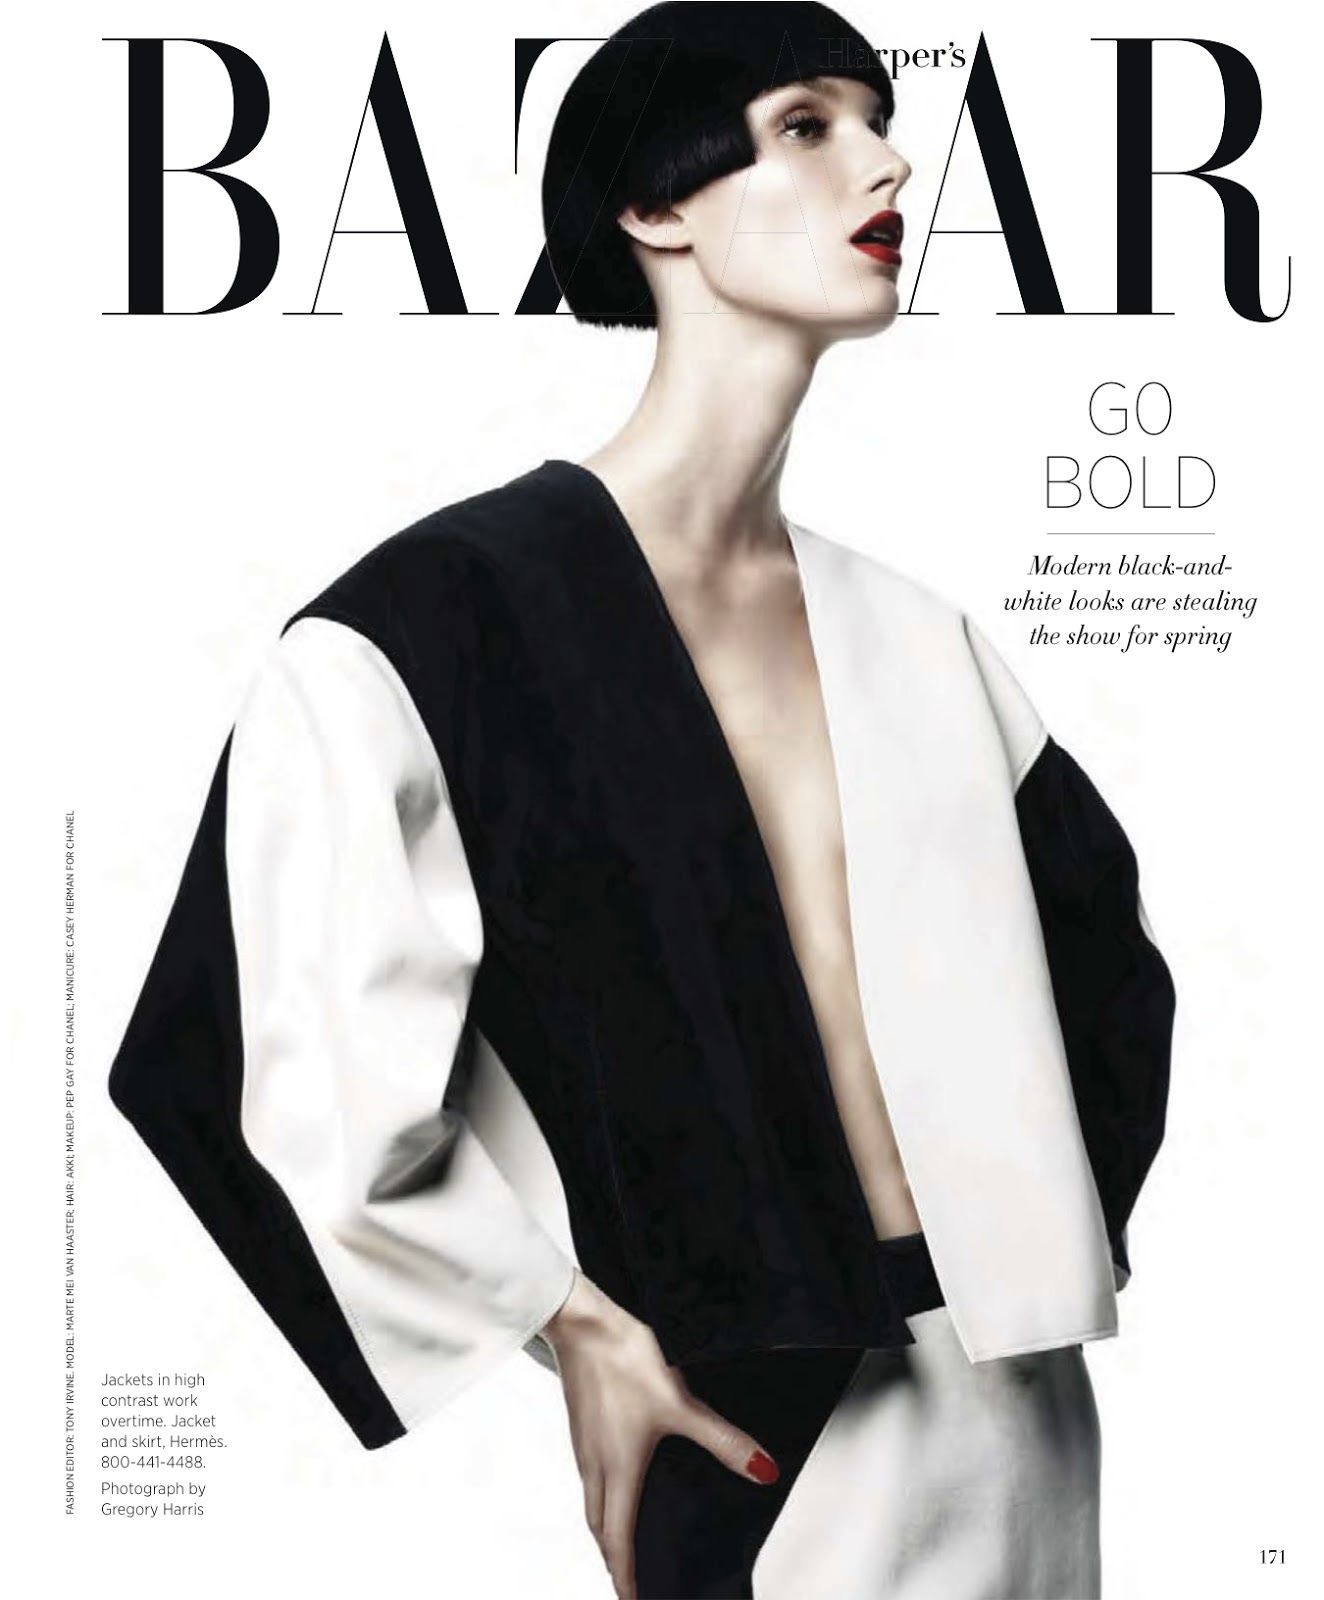 GRAPHIC IMPACT: MARTE MEI VAN HAASTER BY GREGORY HARRIS FOR US HARPER'S BAZAAR FEBRUARY 2013